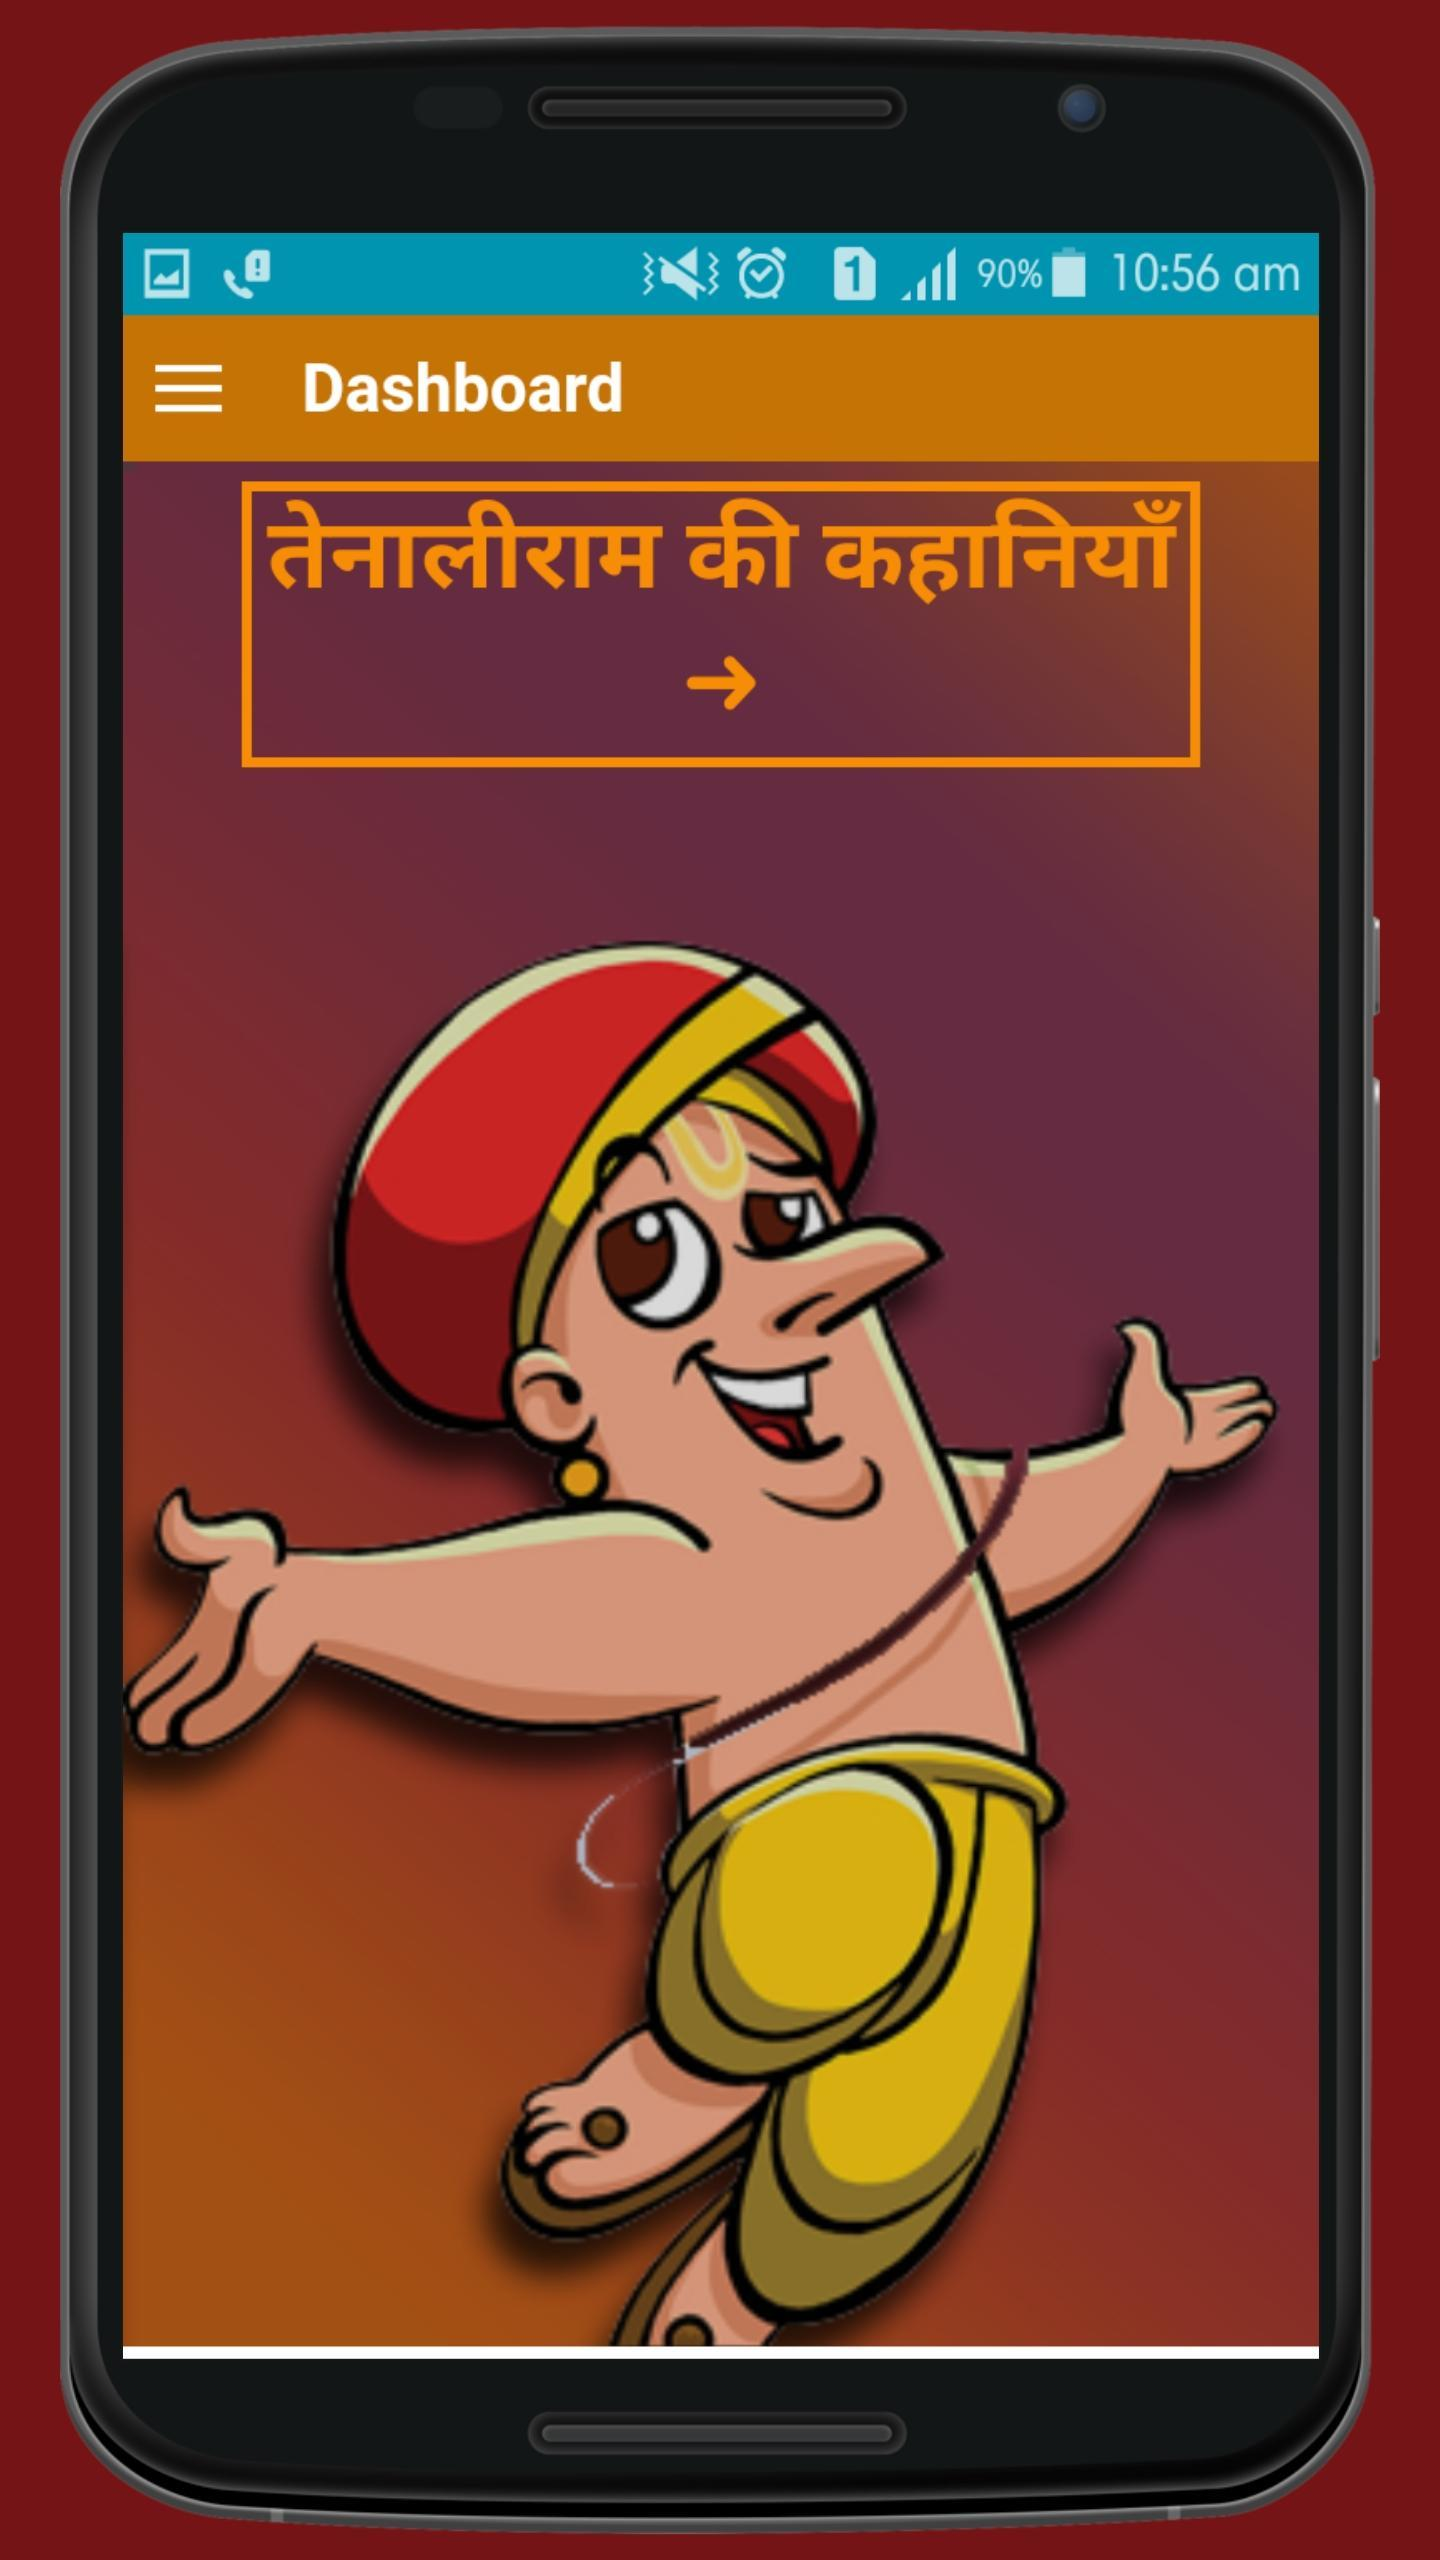 Tenali raman stories in Hindi Offline App for Android - APK Download